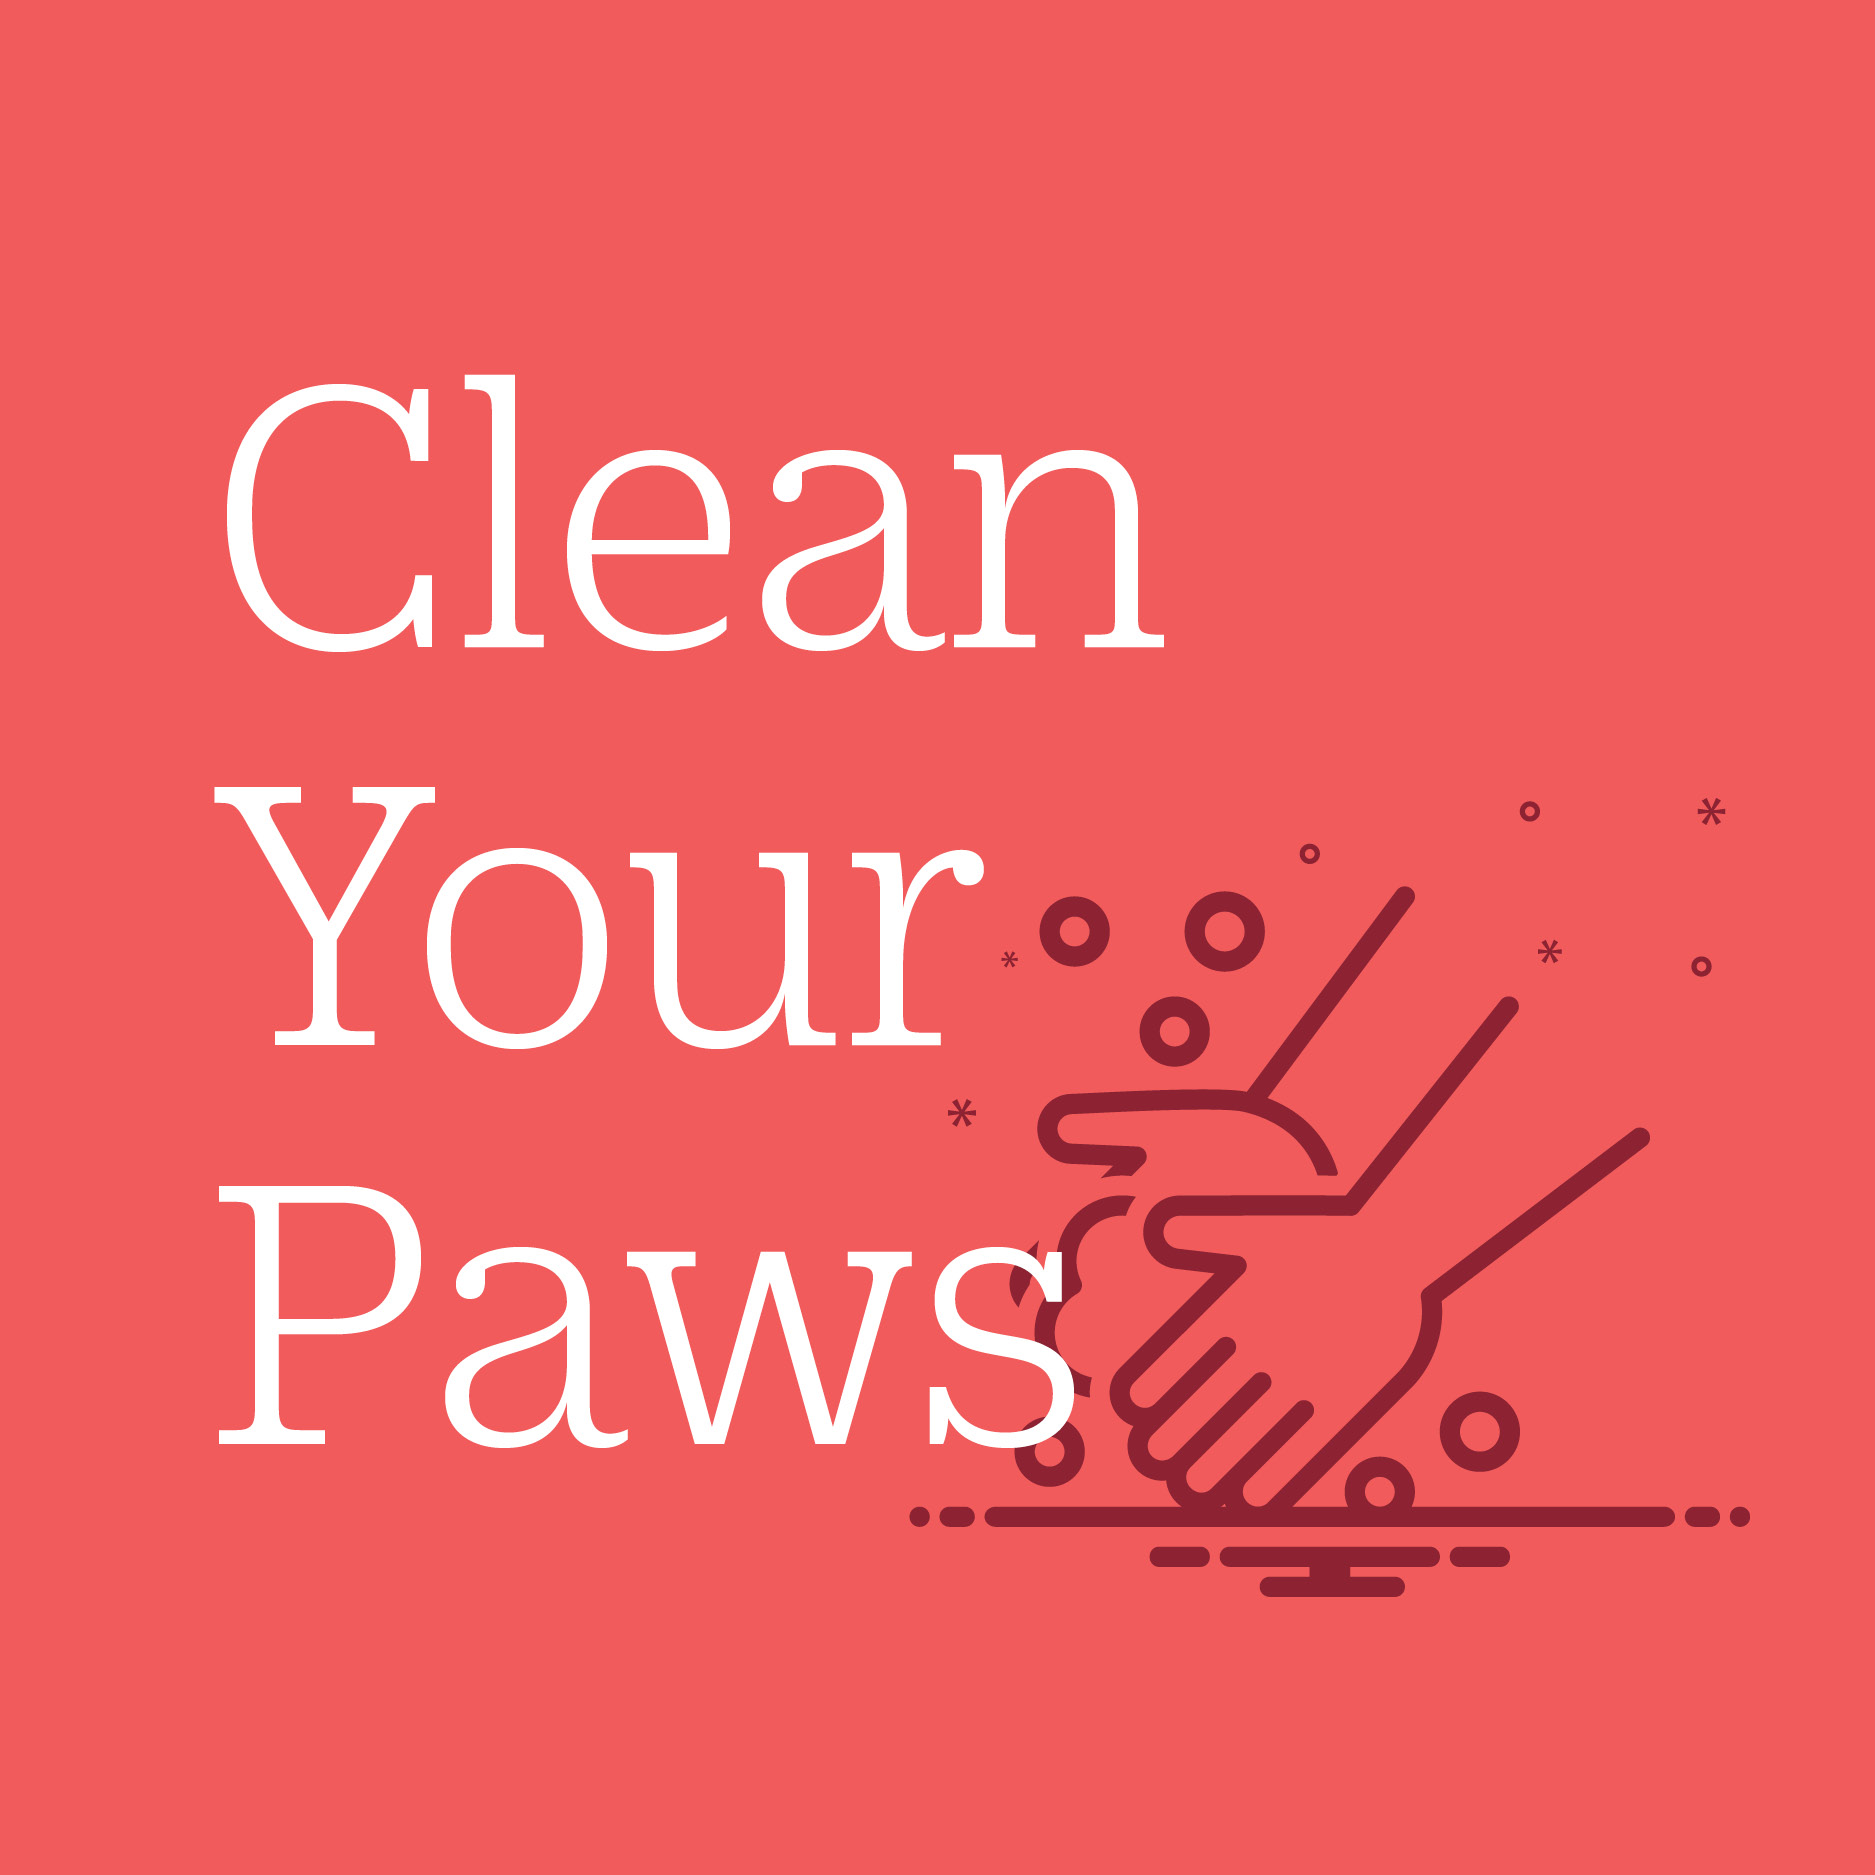 Clean your paws